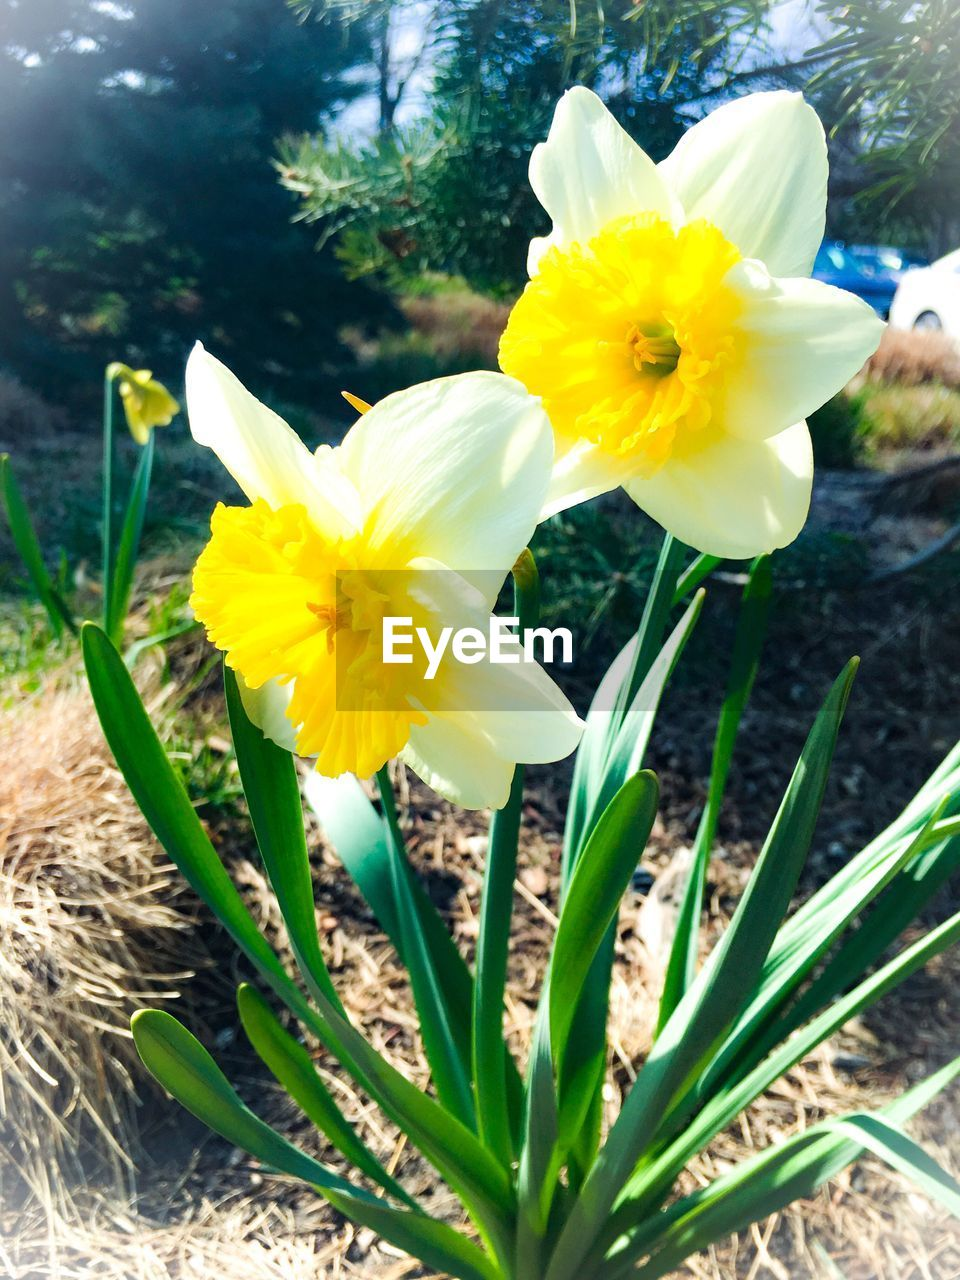 flower, yellow, petal, fragility, growth, flower head, freshness, nature, beauty in nature, plant, day, daffodil, outdoors, close-up, no people, blooming